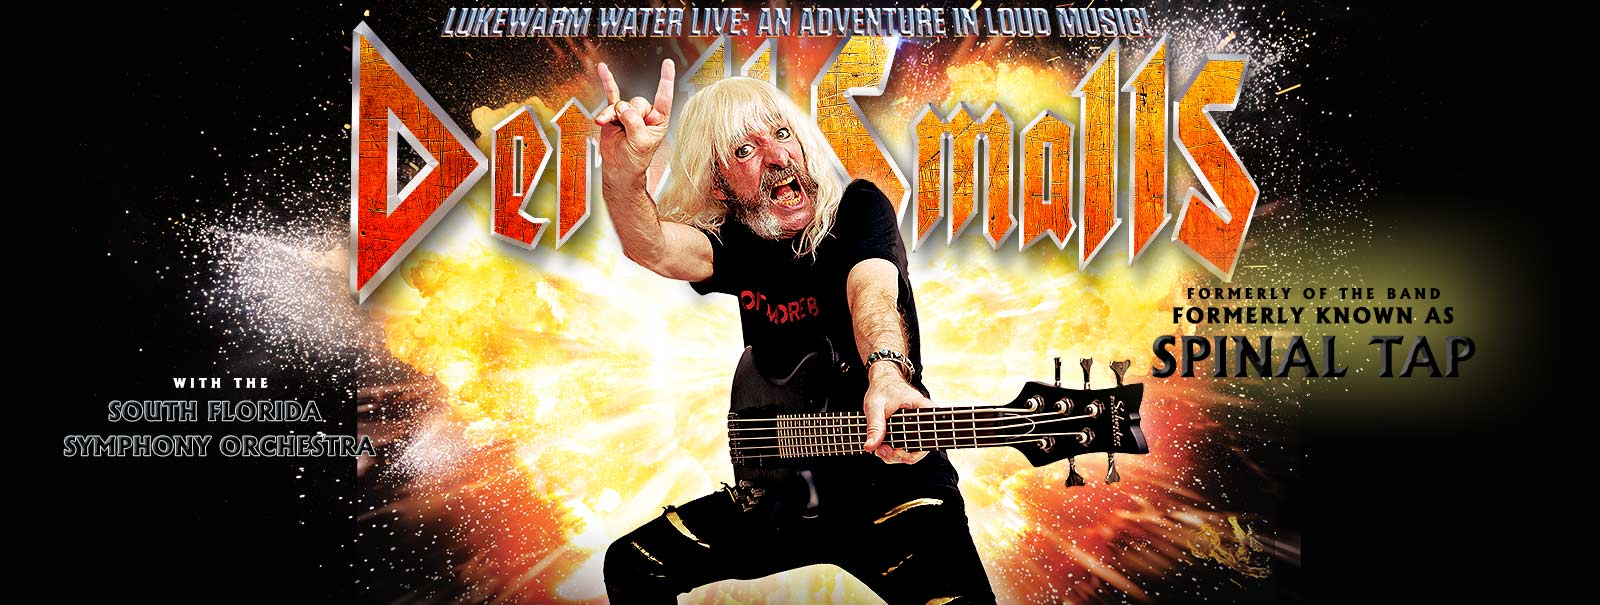 More Info - Derek Smalls with Symphony - Lukewarm Water Live